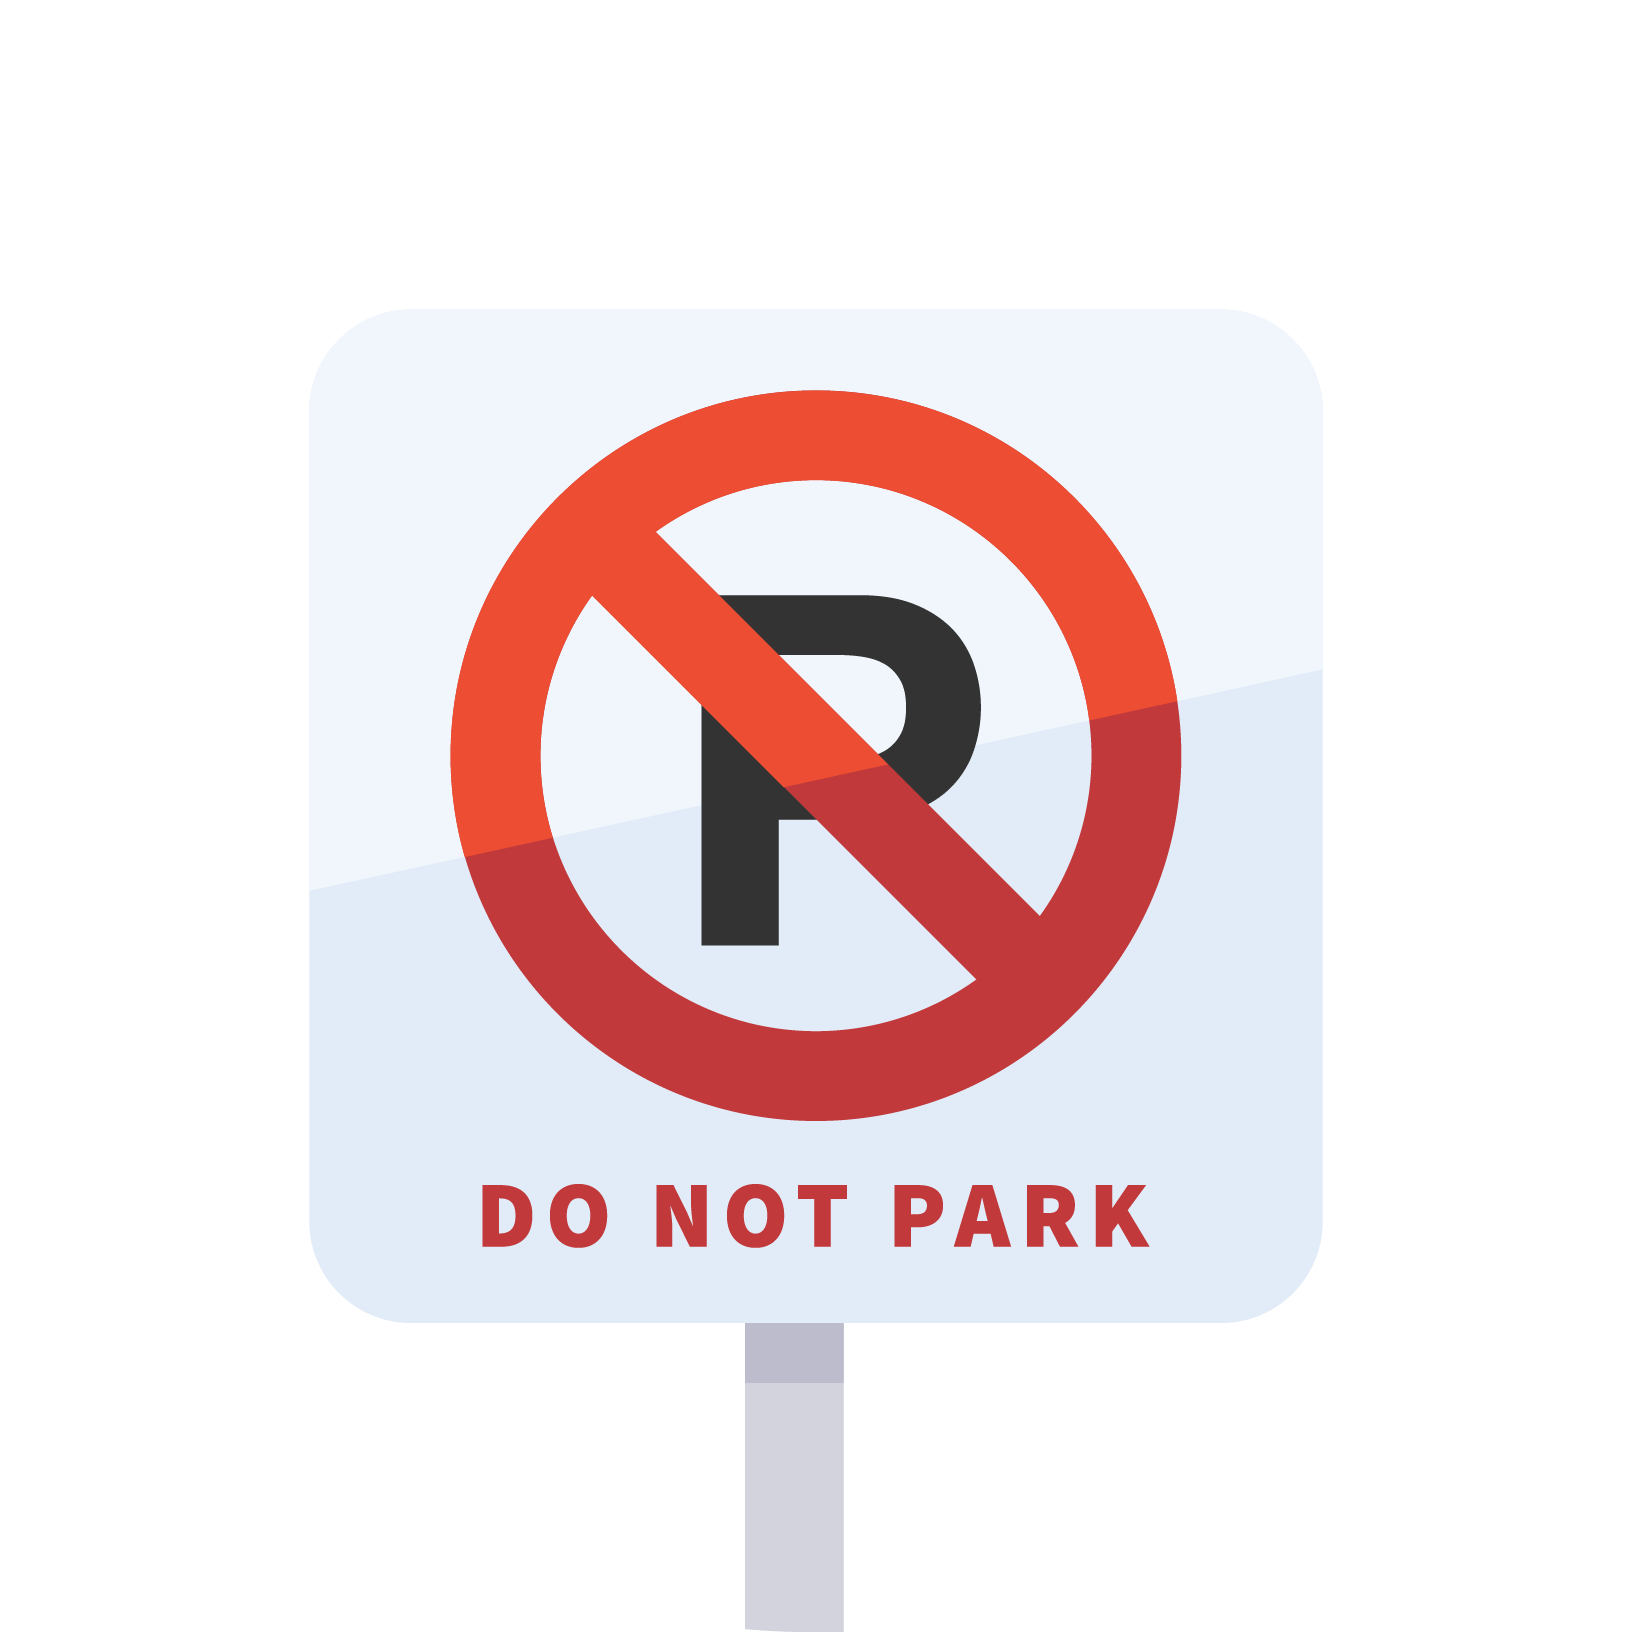 Sign saying 'DO NOT PARK'